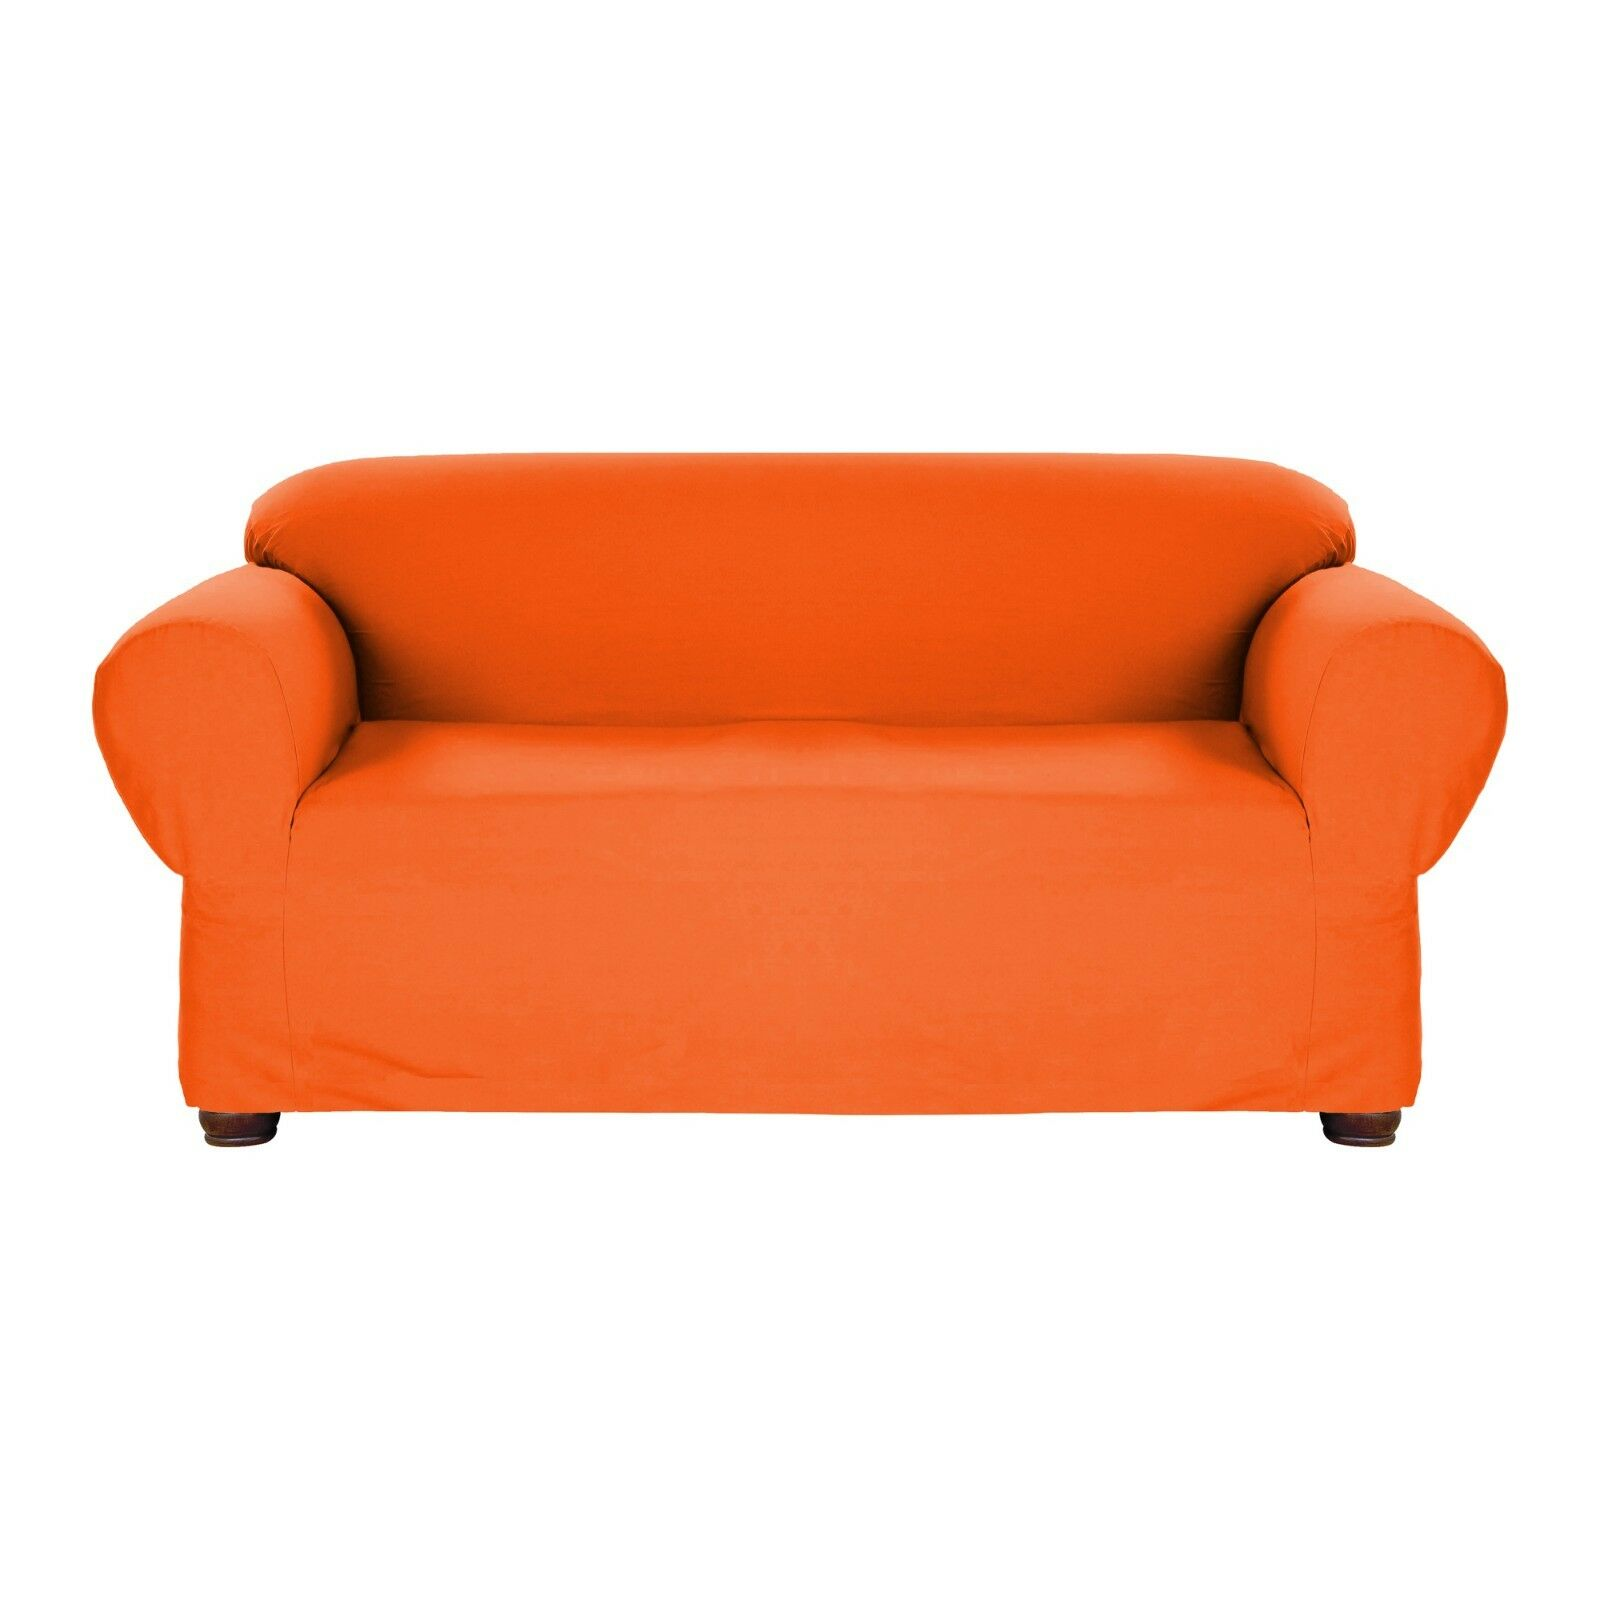 Details about ORANGE JERSEY LOVESEAT STRETCH SLIPCOVER COUCH COVER LOVE  SEAT COVER, KASHI HOME